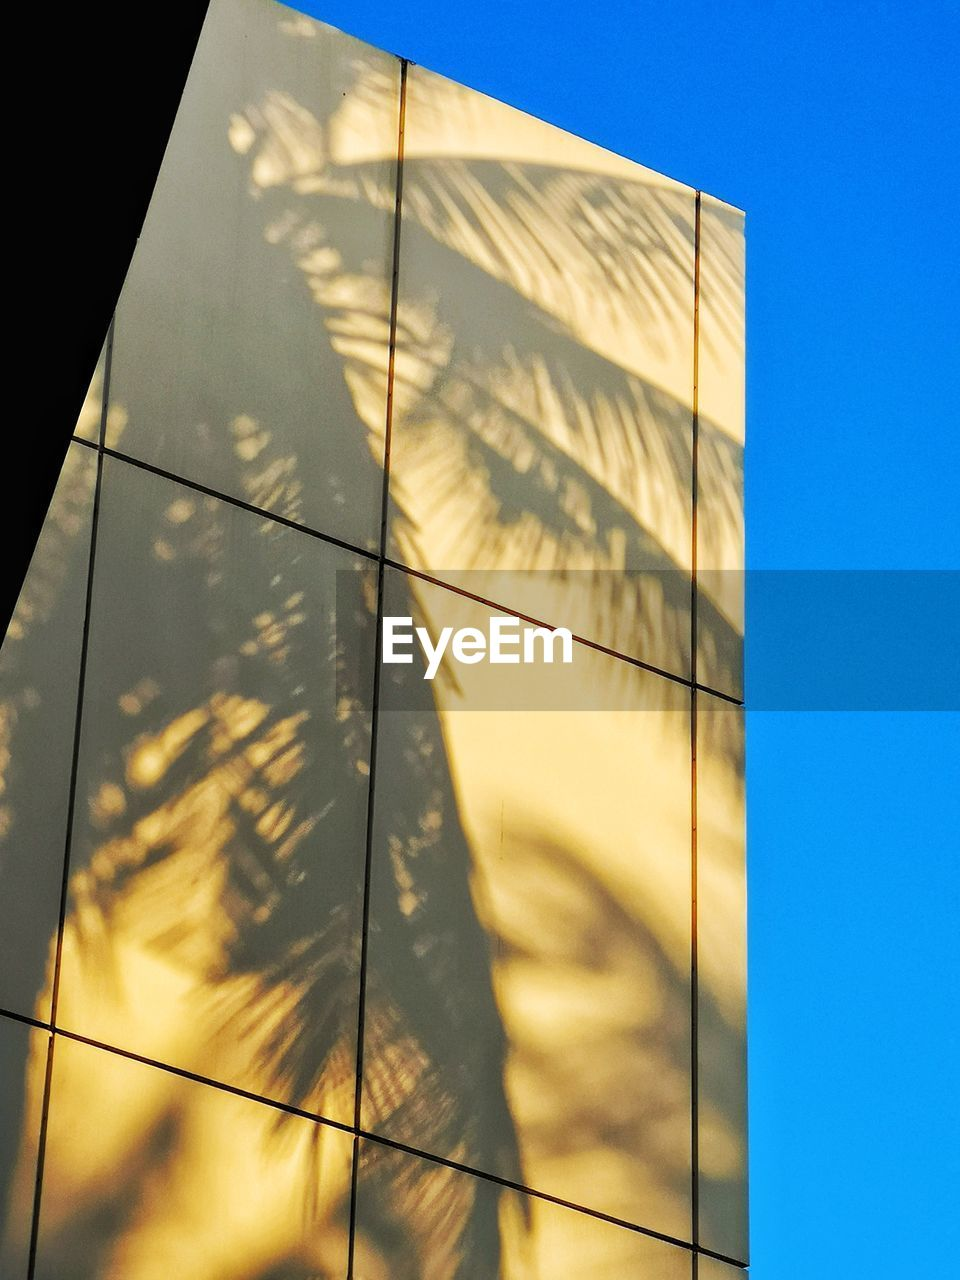 sky, architecture, built structure, building exterior, nature, sunlight, low angle view, no people, day, building, reflection, office building exterior, outdoors, glass - material, city, modern, office, clear sky, blue, shape, skyscraper